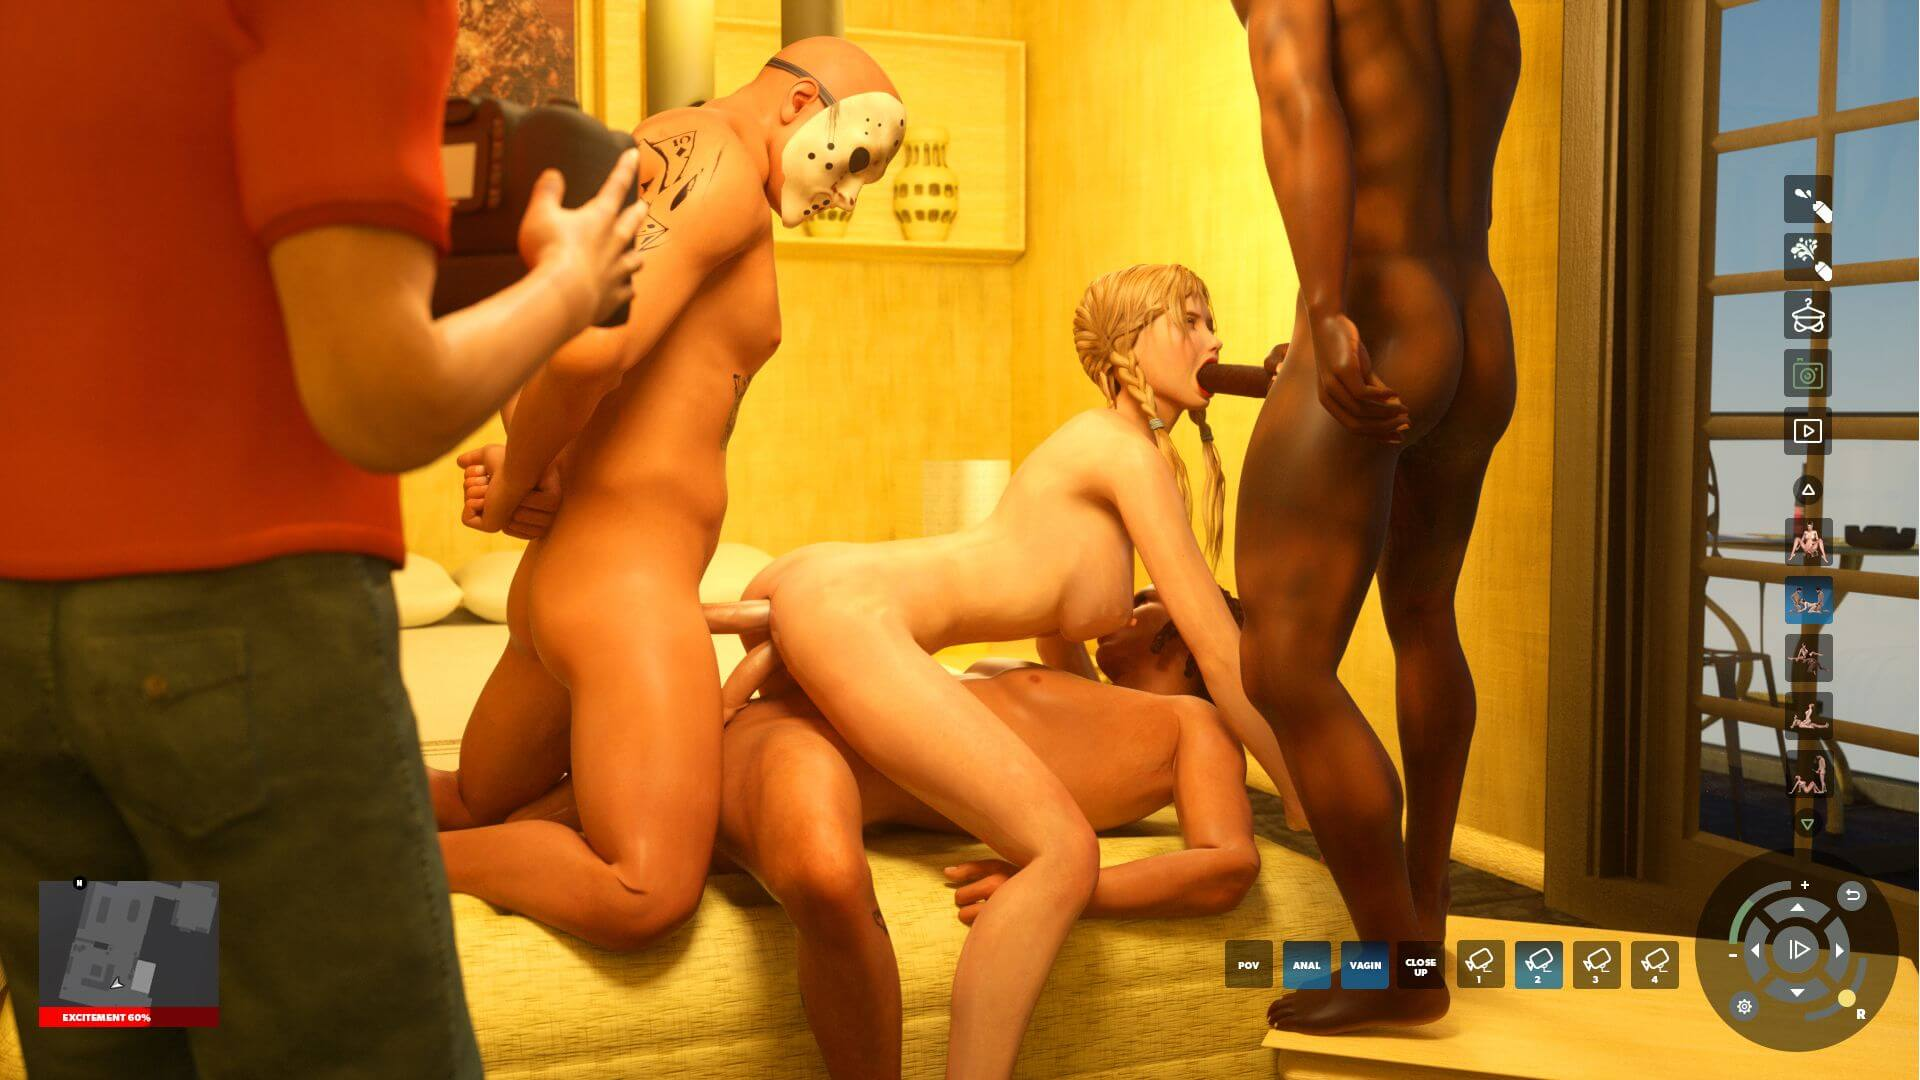 Free downloadable 3d sex games hardcore clips